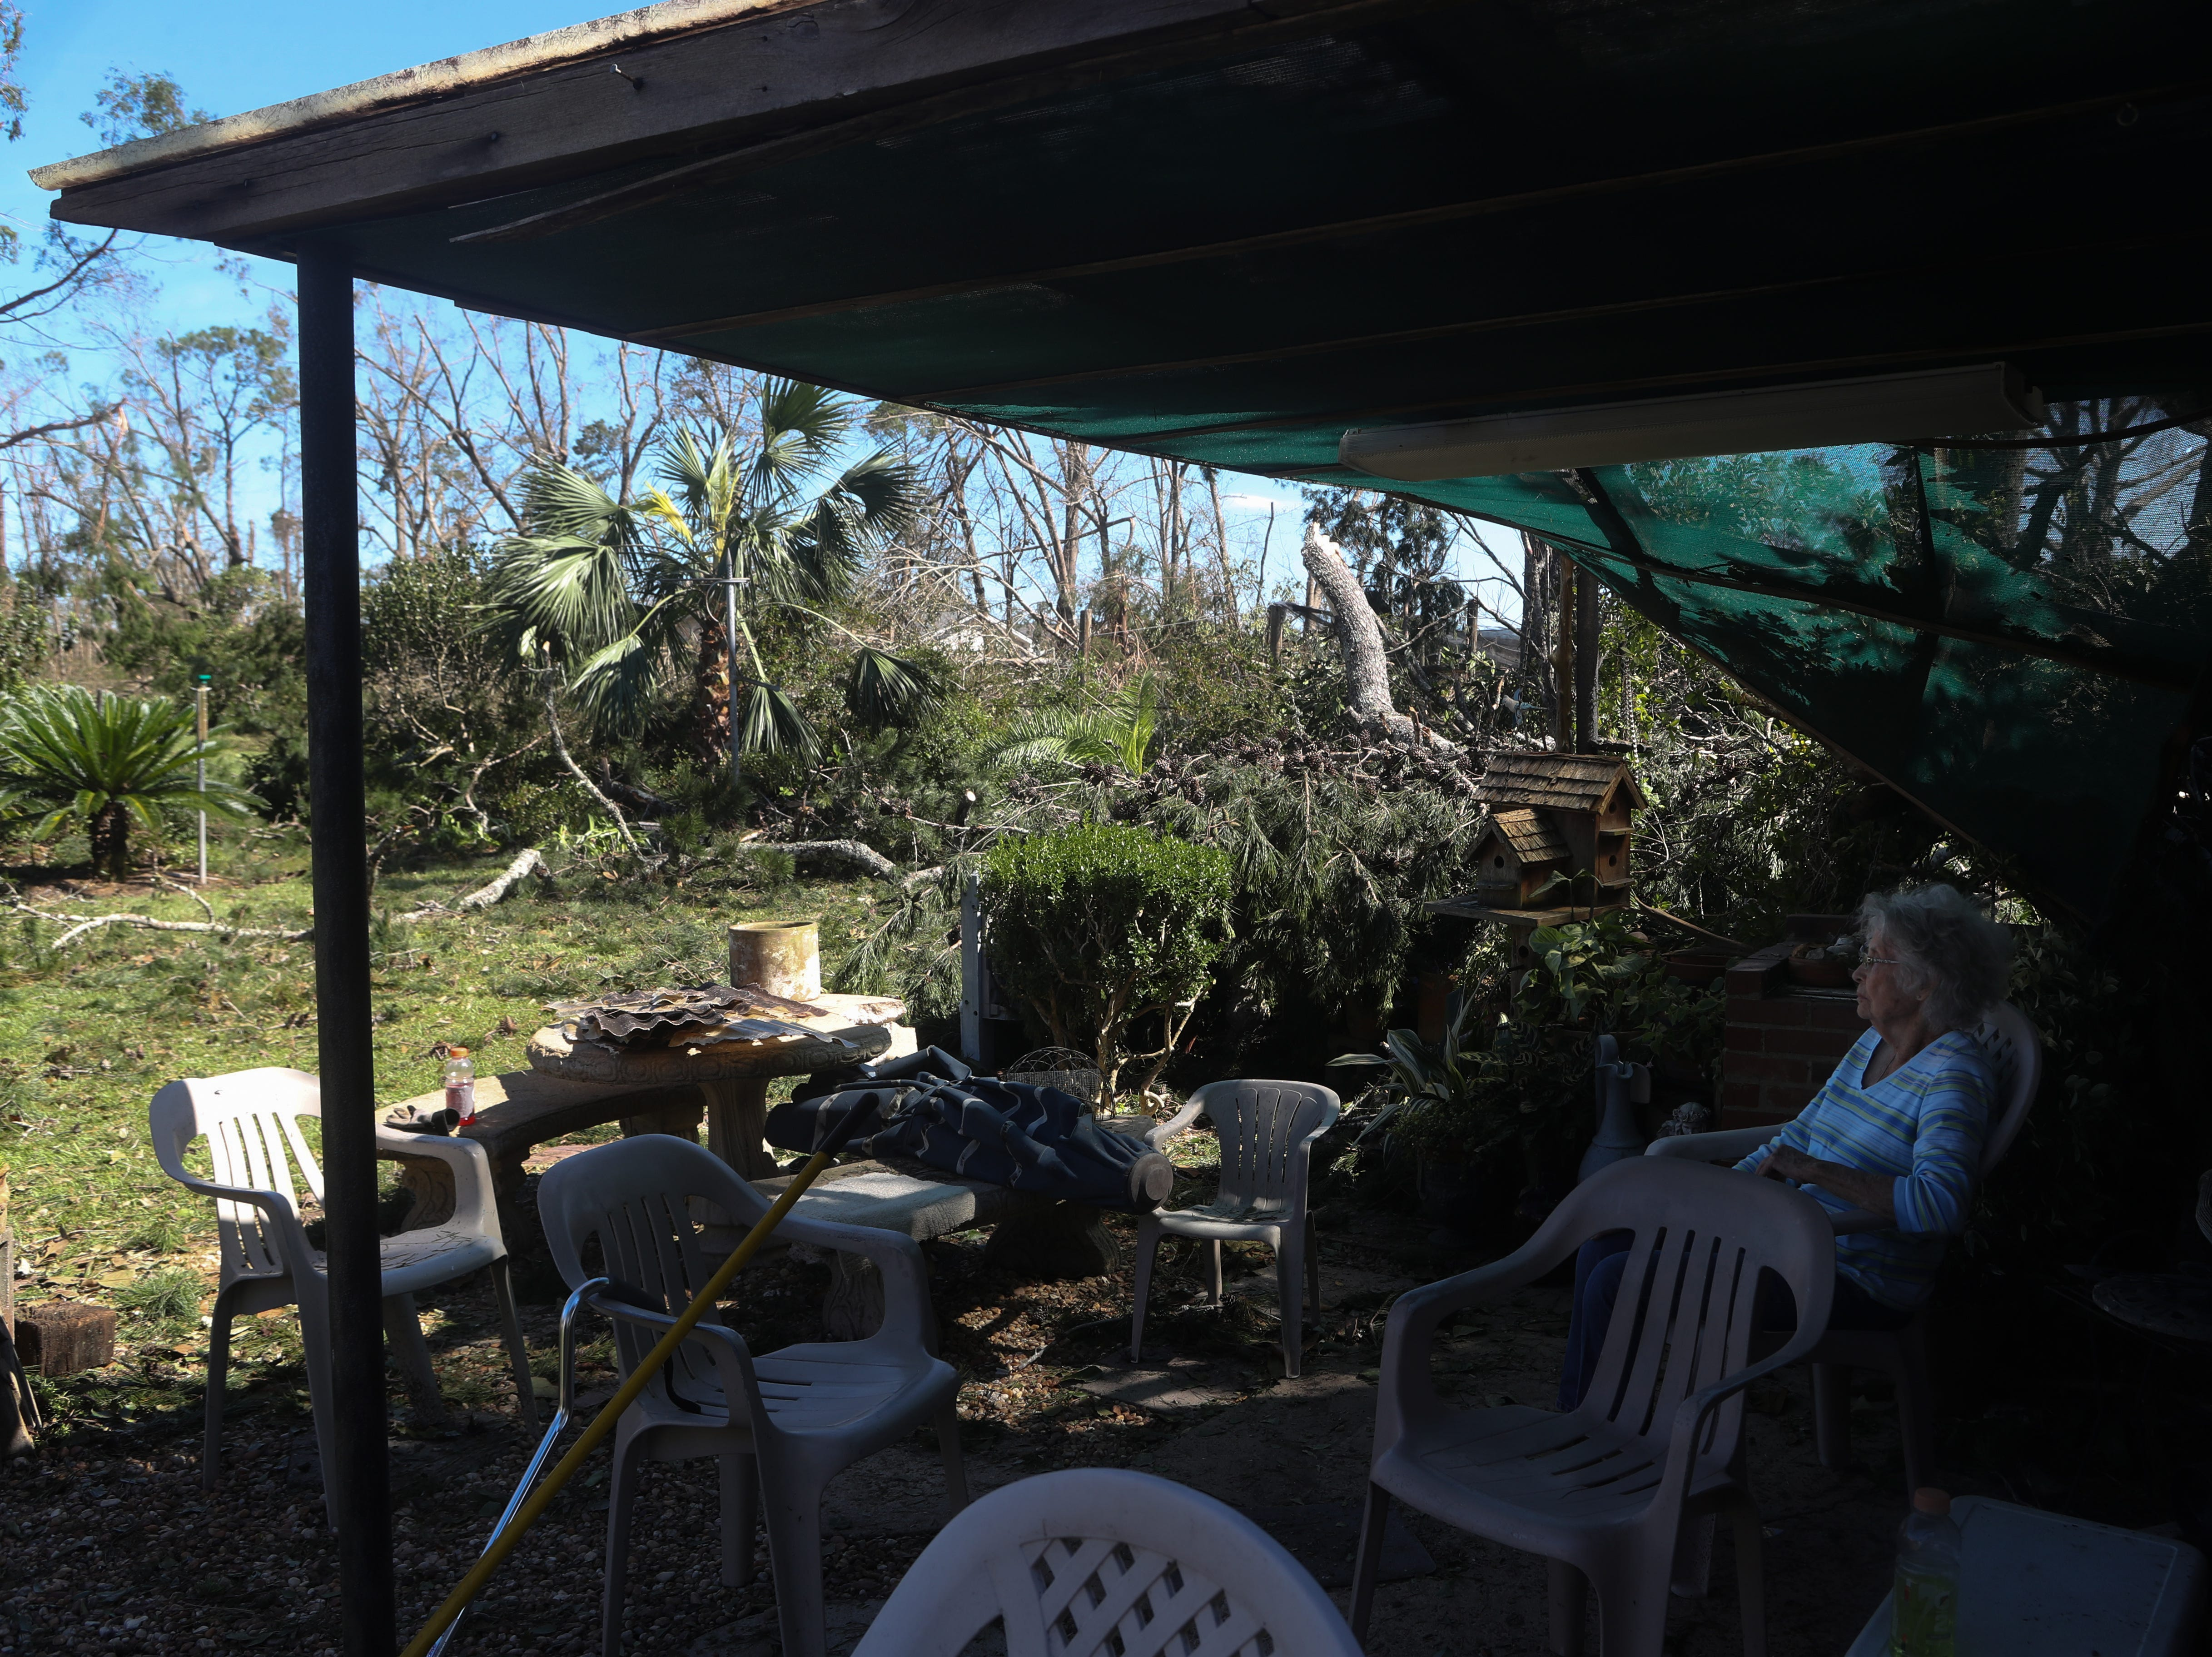 Doris Glass looks at the mess in her backyard in Blountstown, Fla. in the aftermath of Hurricane Michael Friday, Oct. 12, 2018.